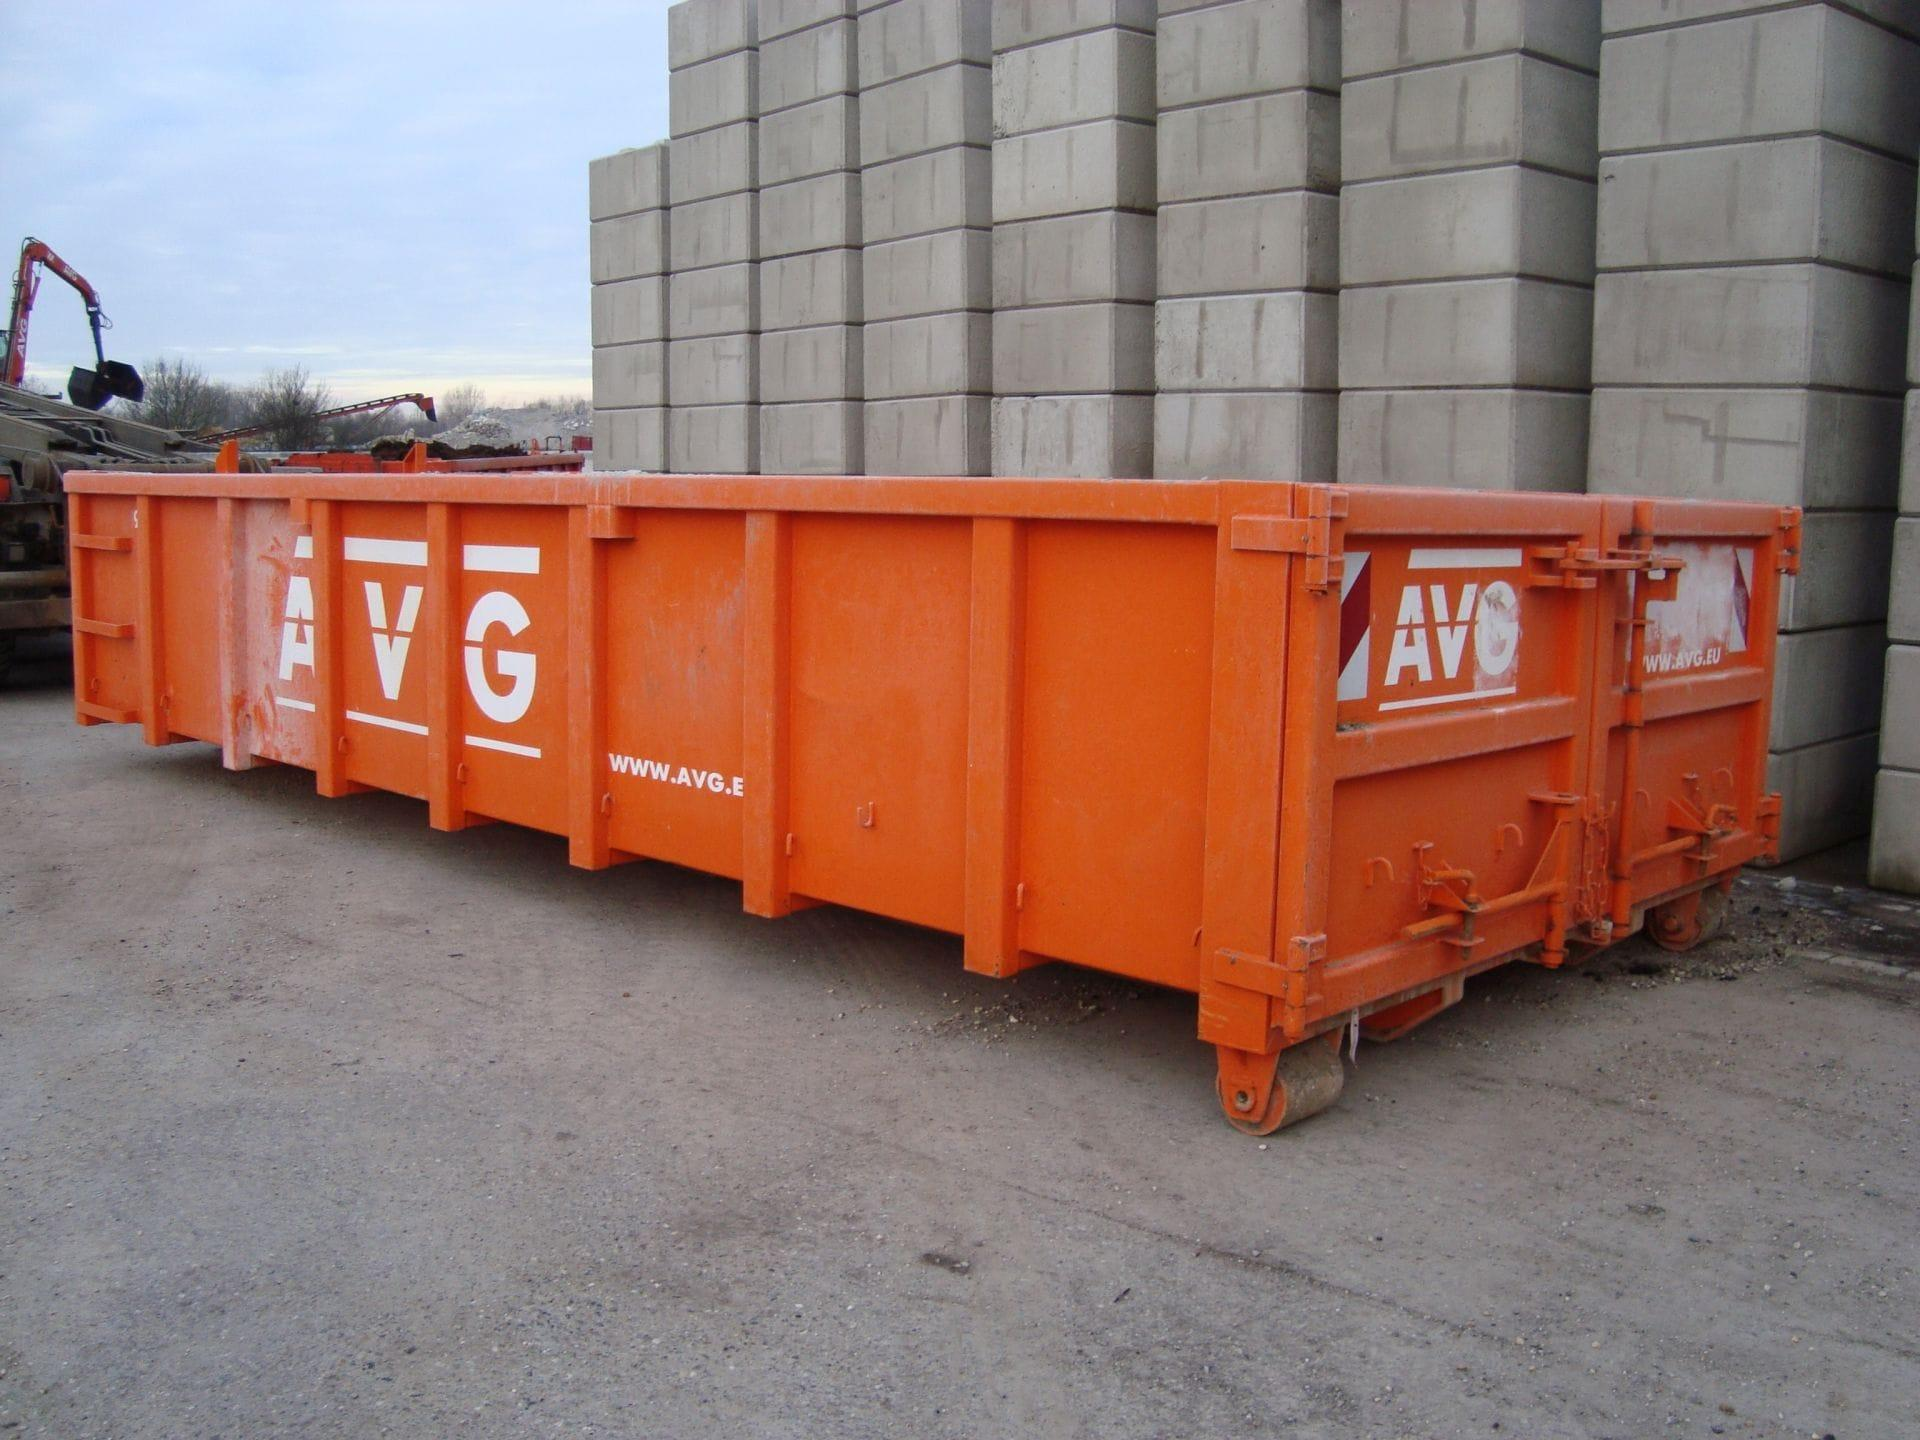 lange-container-13-avg-bouwstoffen